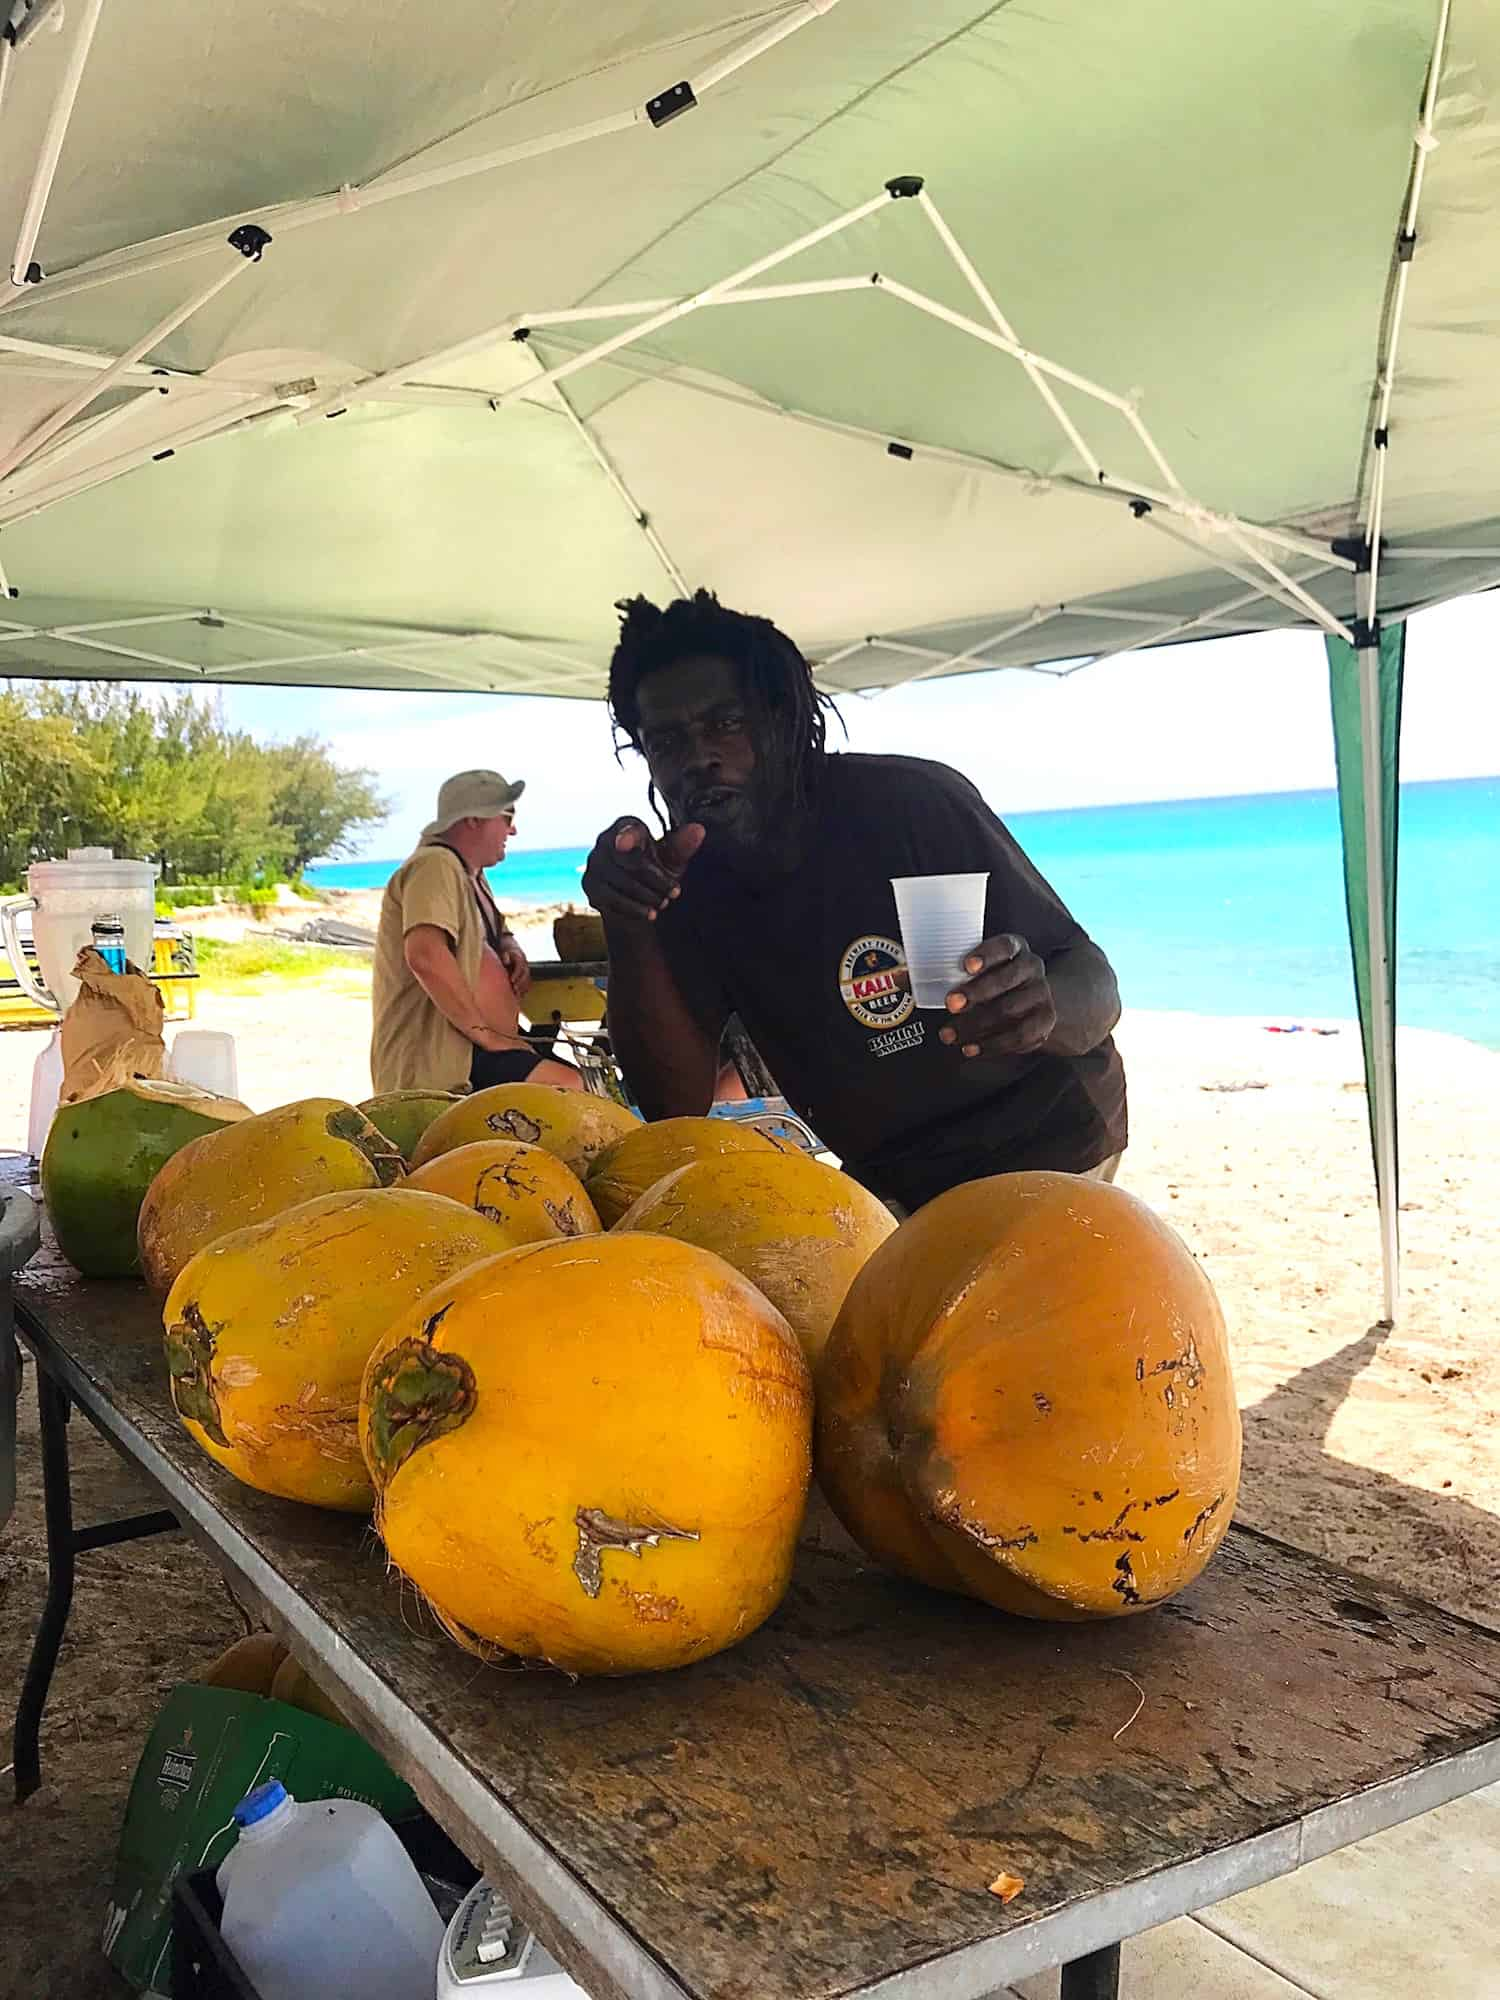 Coconut rum is a beach cocktail specialty served during the abaco regatta time